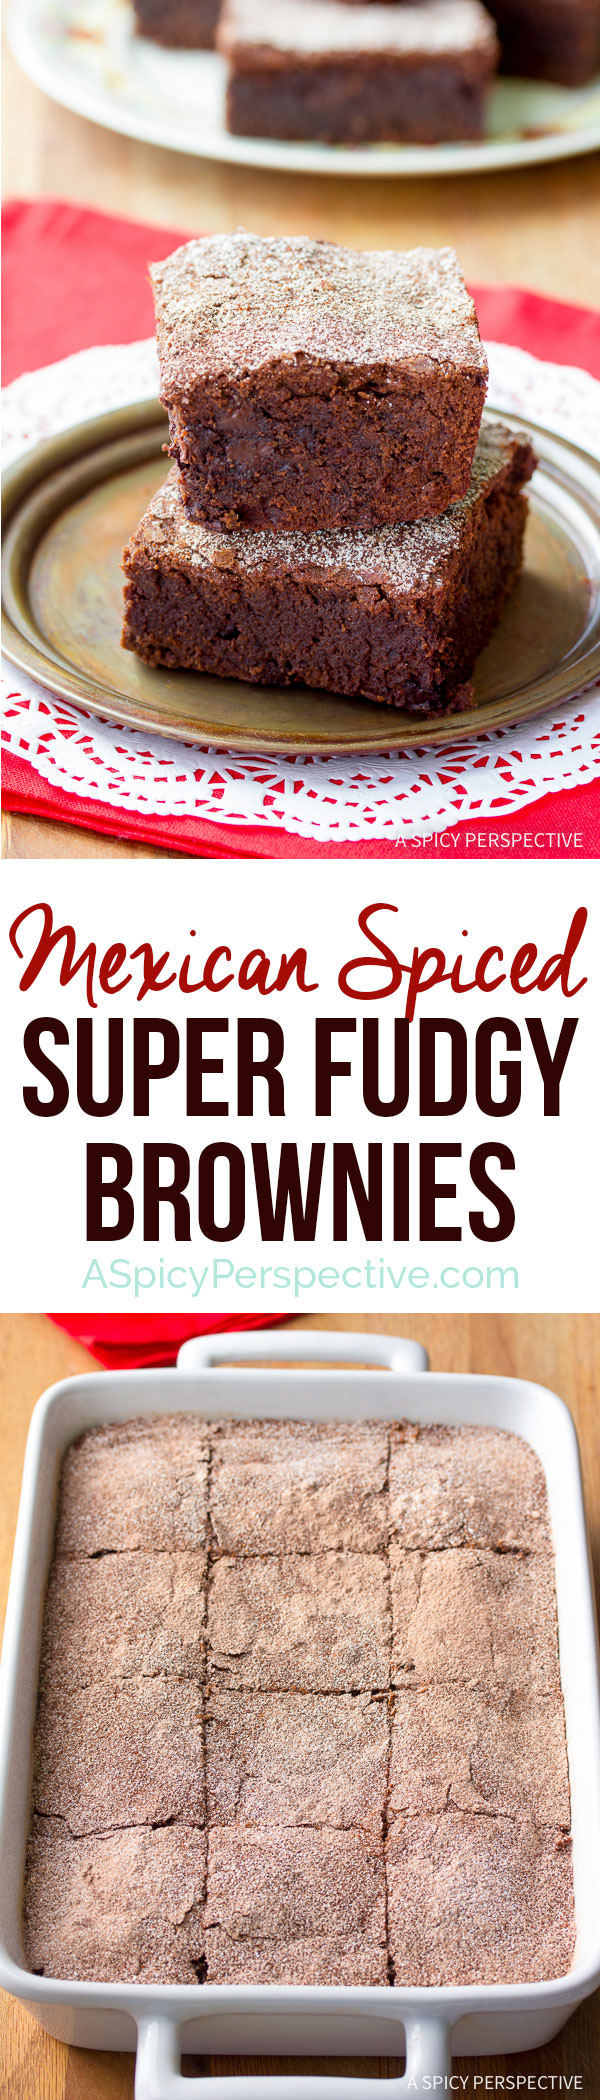 Super Fudgy Spiced Mexican Brownies Recipe | ASpicyPerspective.com